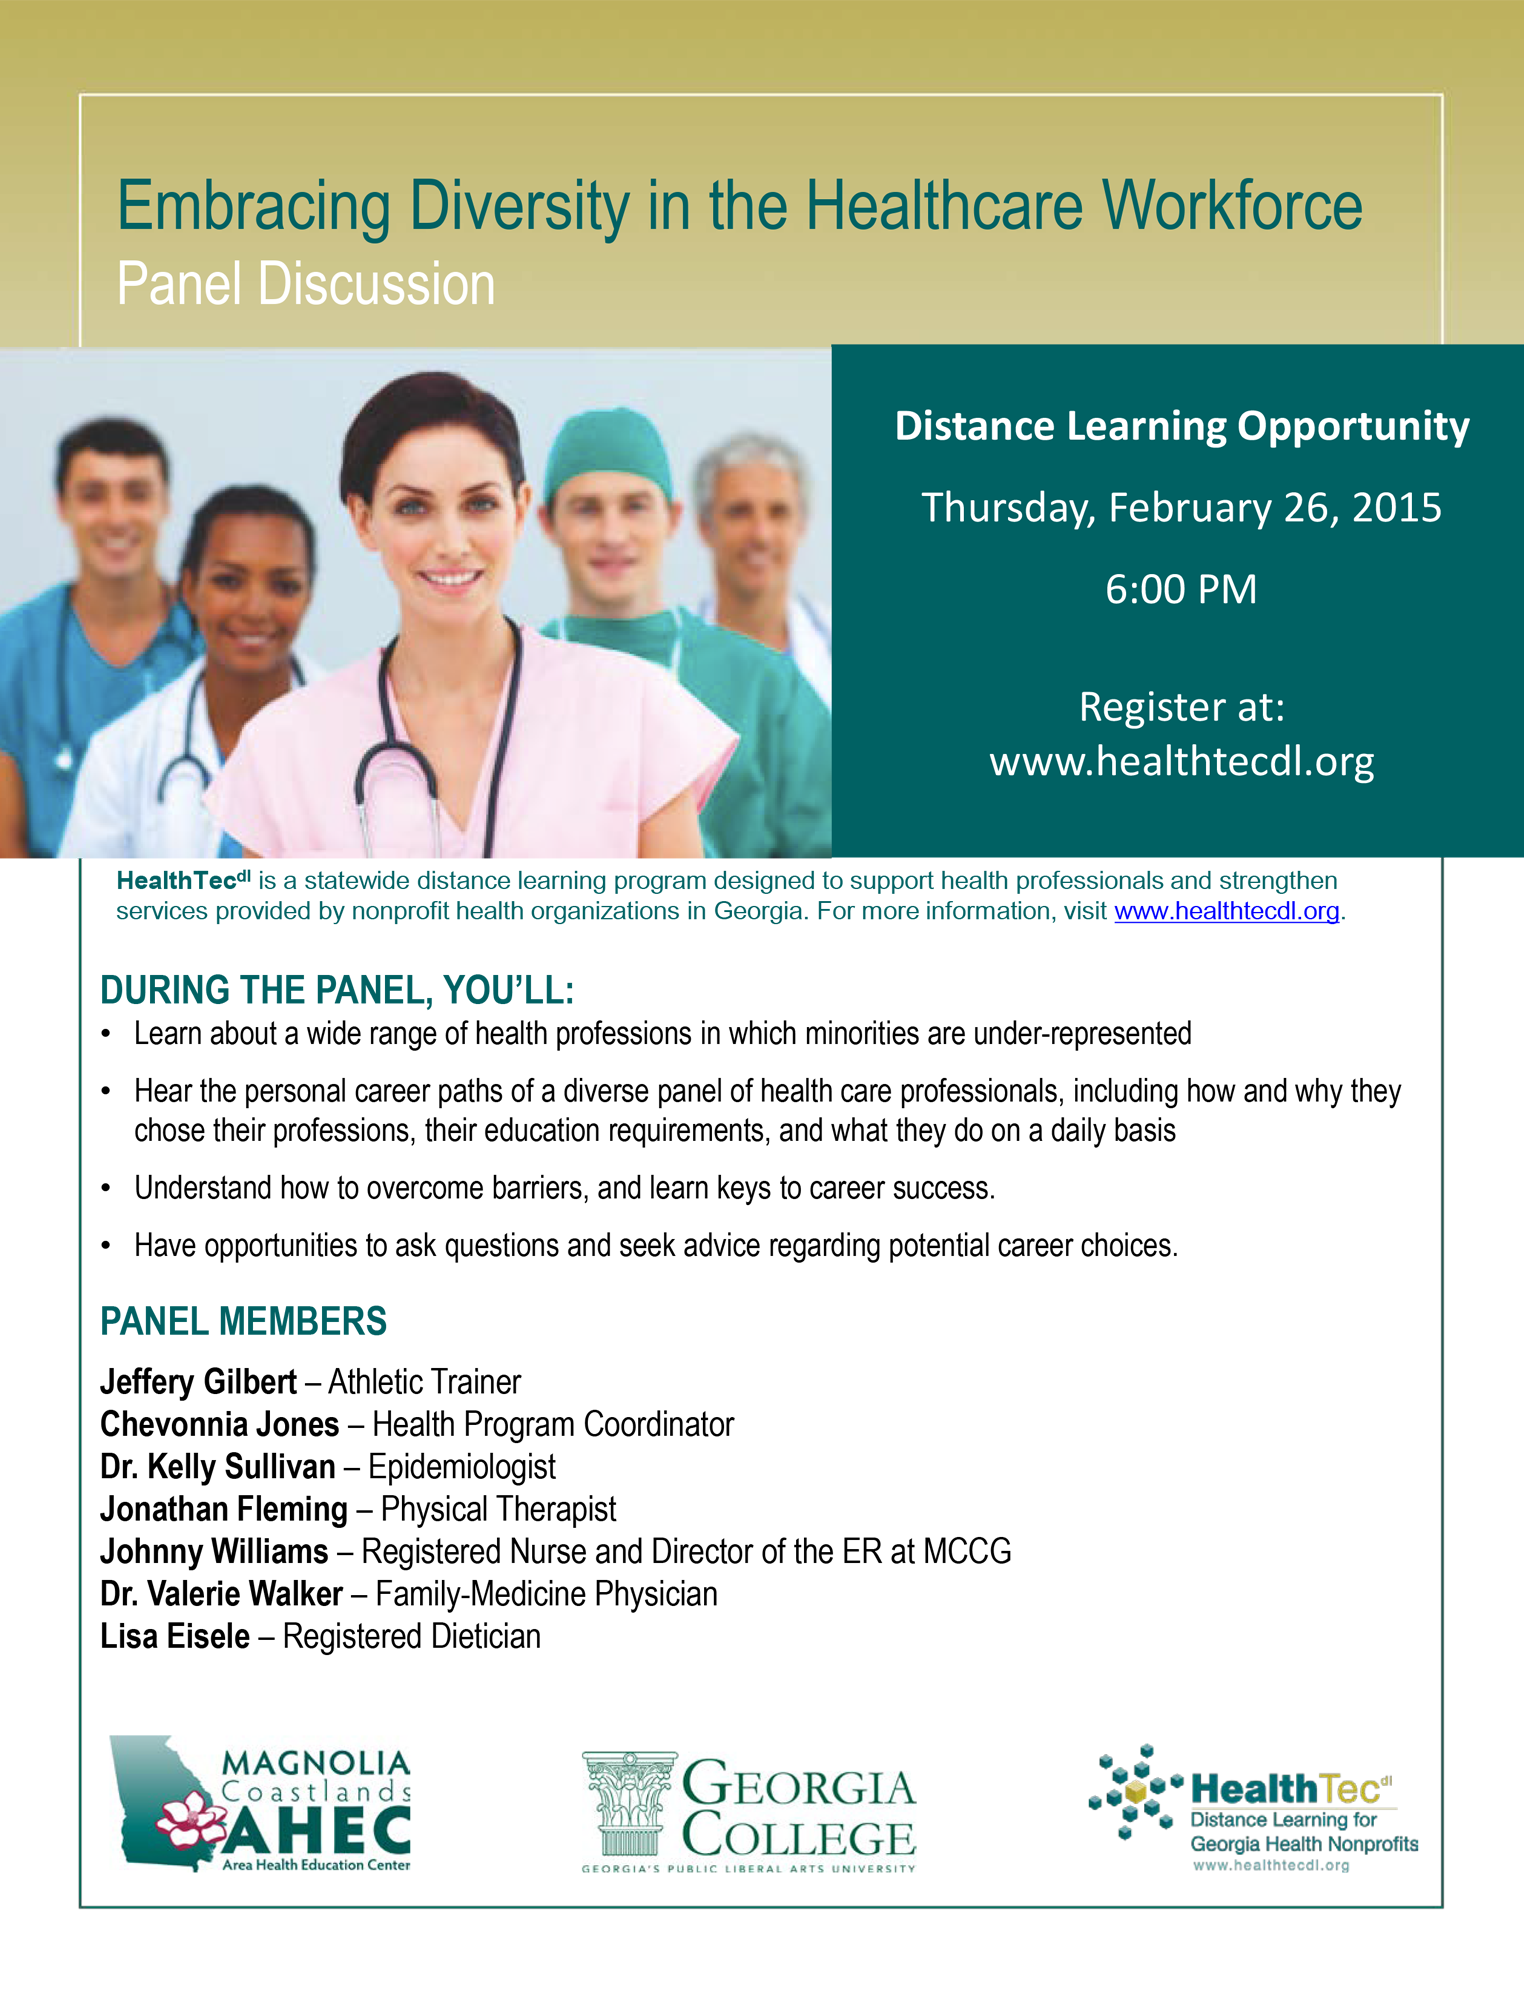 Embracing Diversity in the Healthcare Workforce 2015